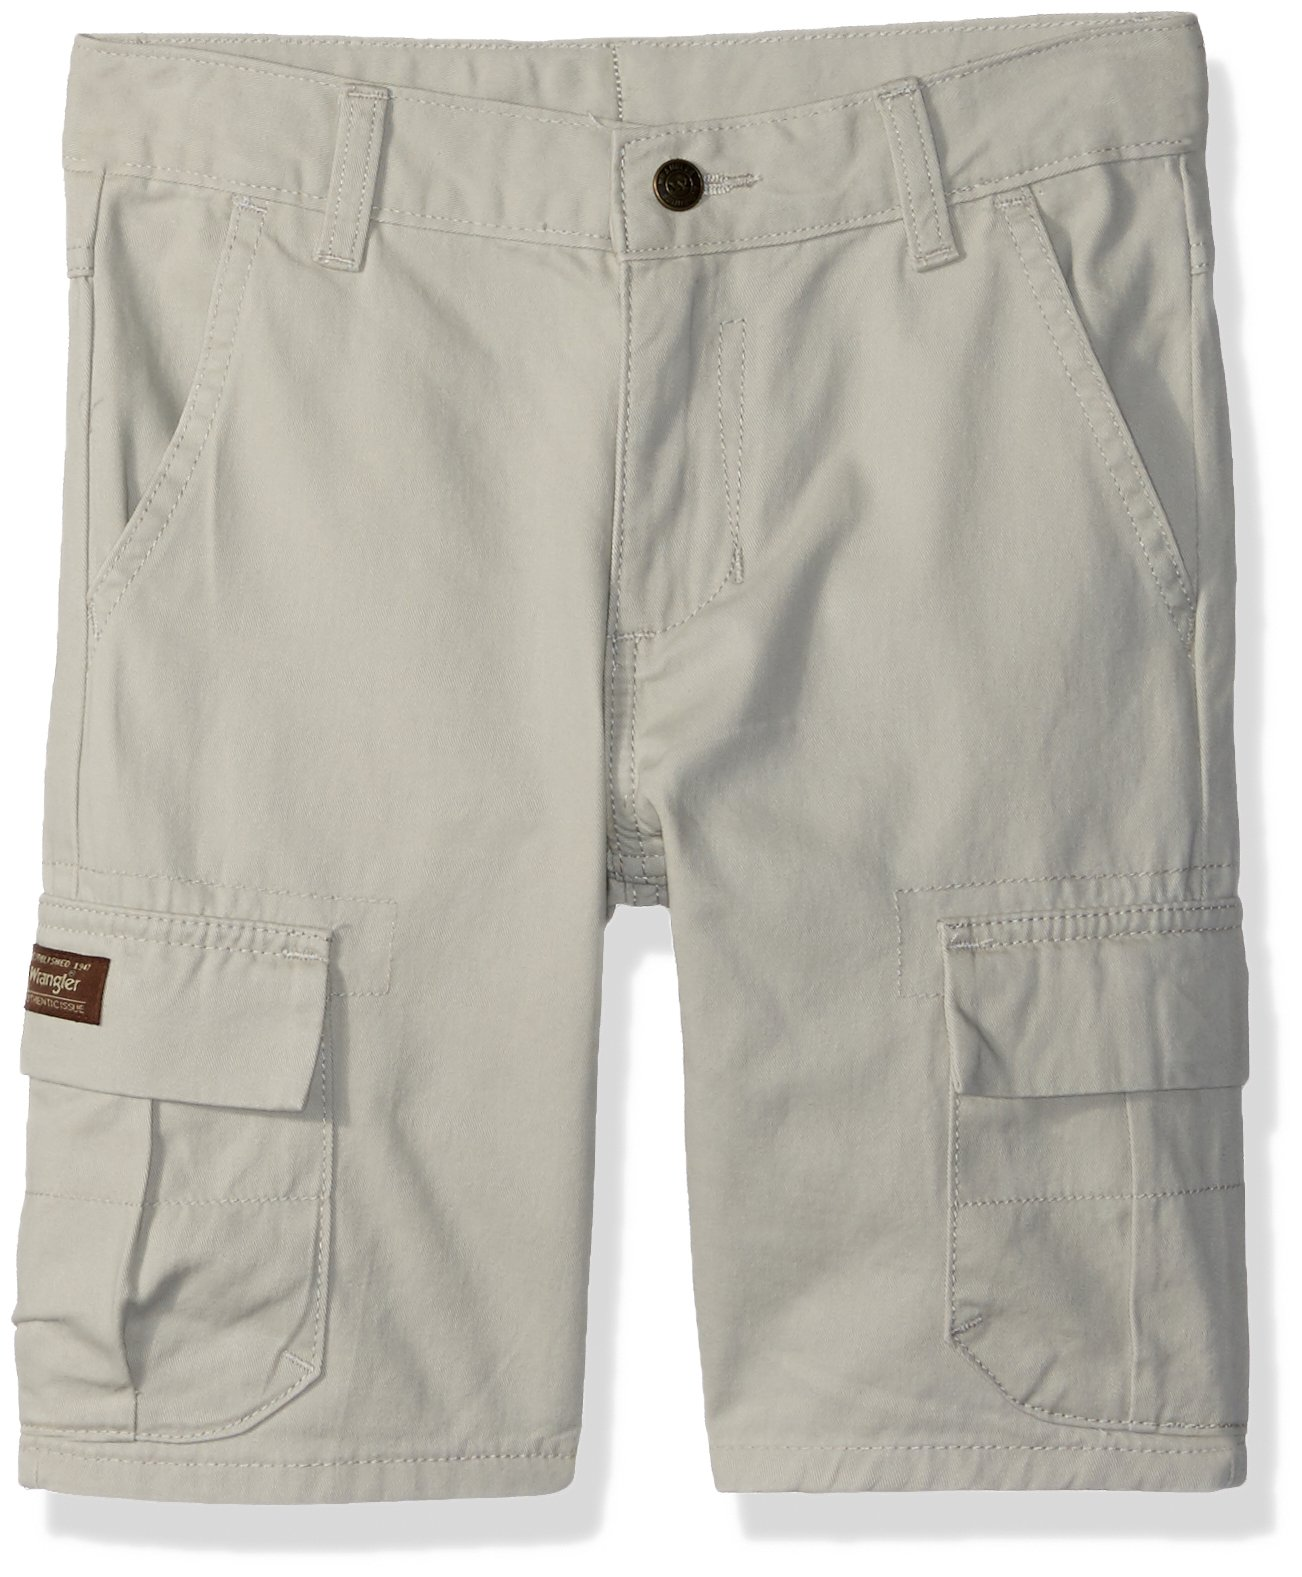 Wrangler Authentics Boys' Classic Cargo Short, Dark Putty, 10